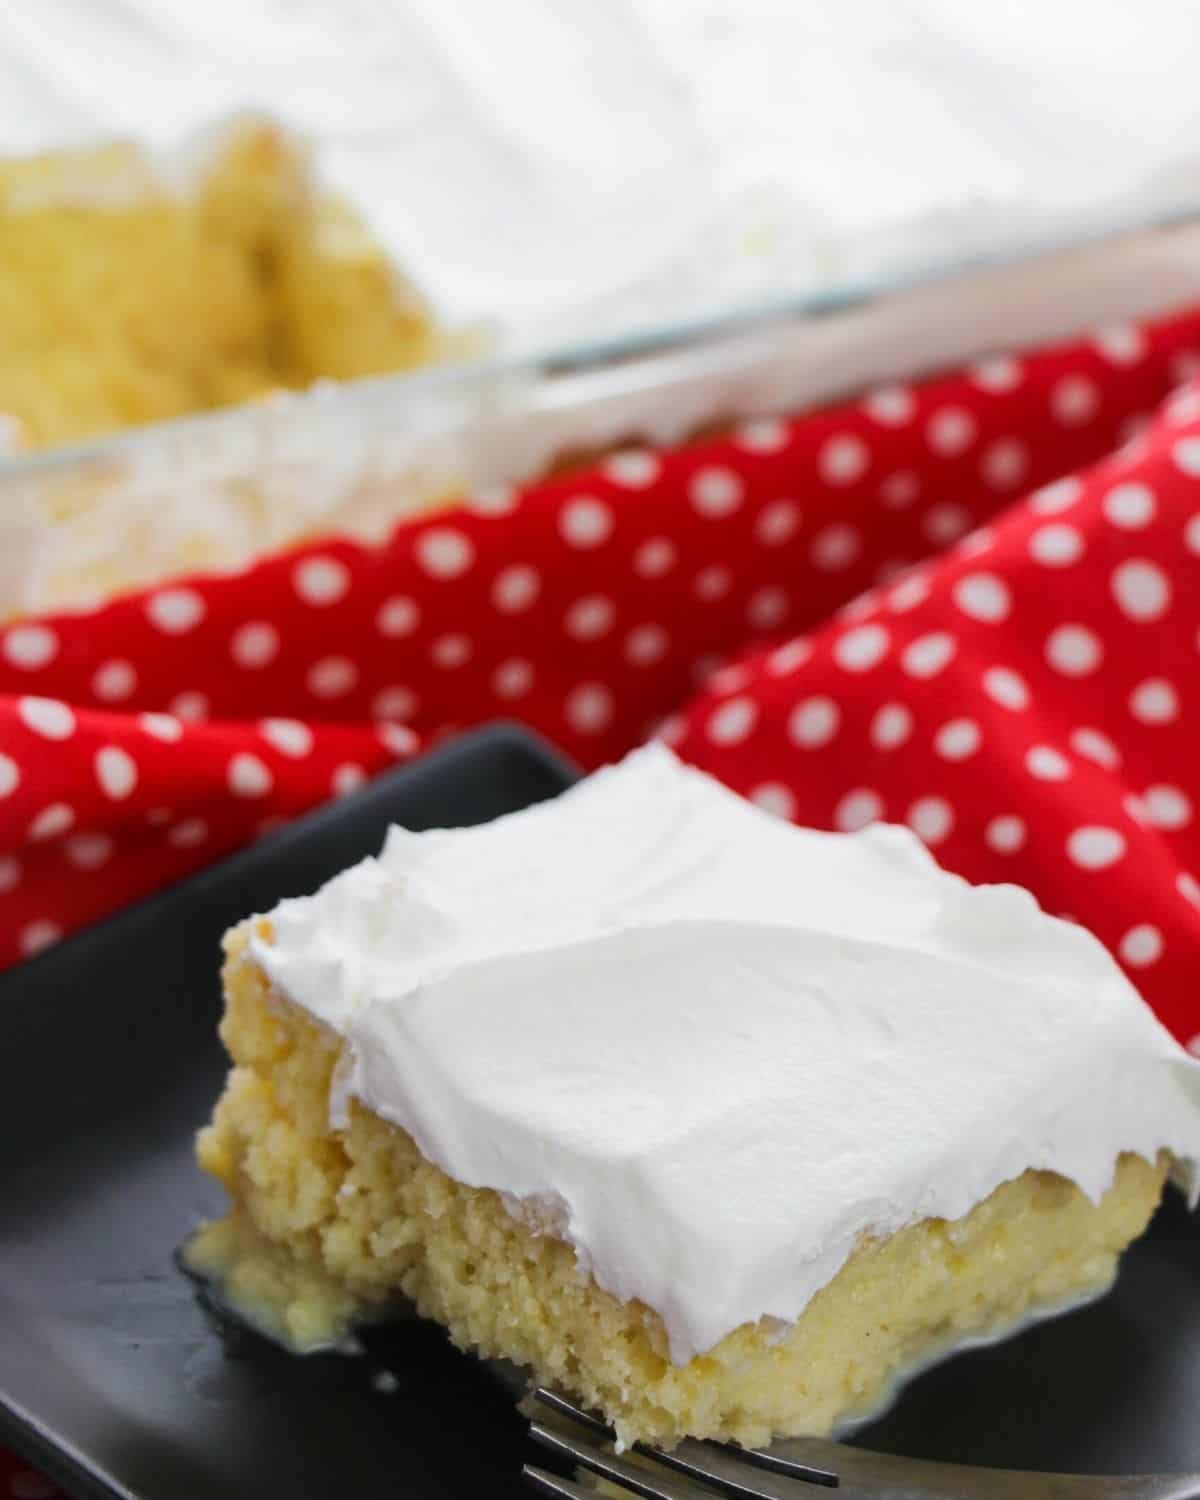 A slice of tres leches cake on a plate with a red polka dot napkin in the background.